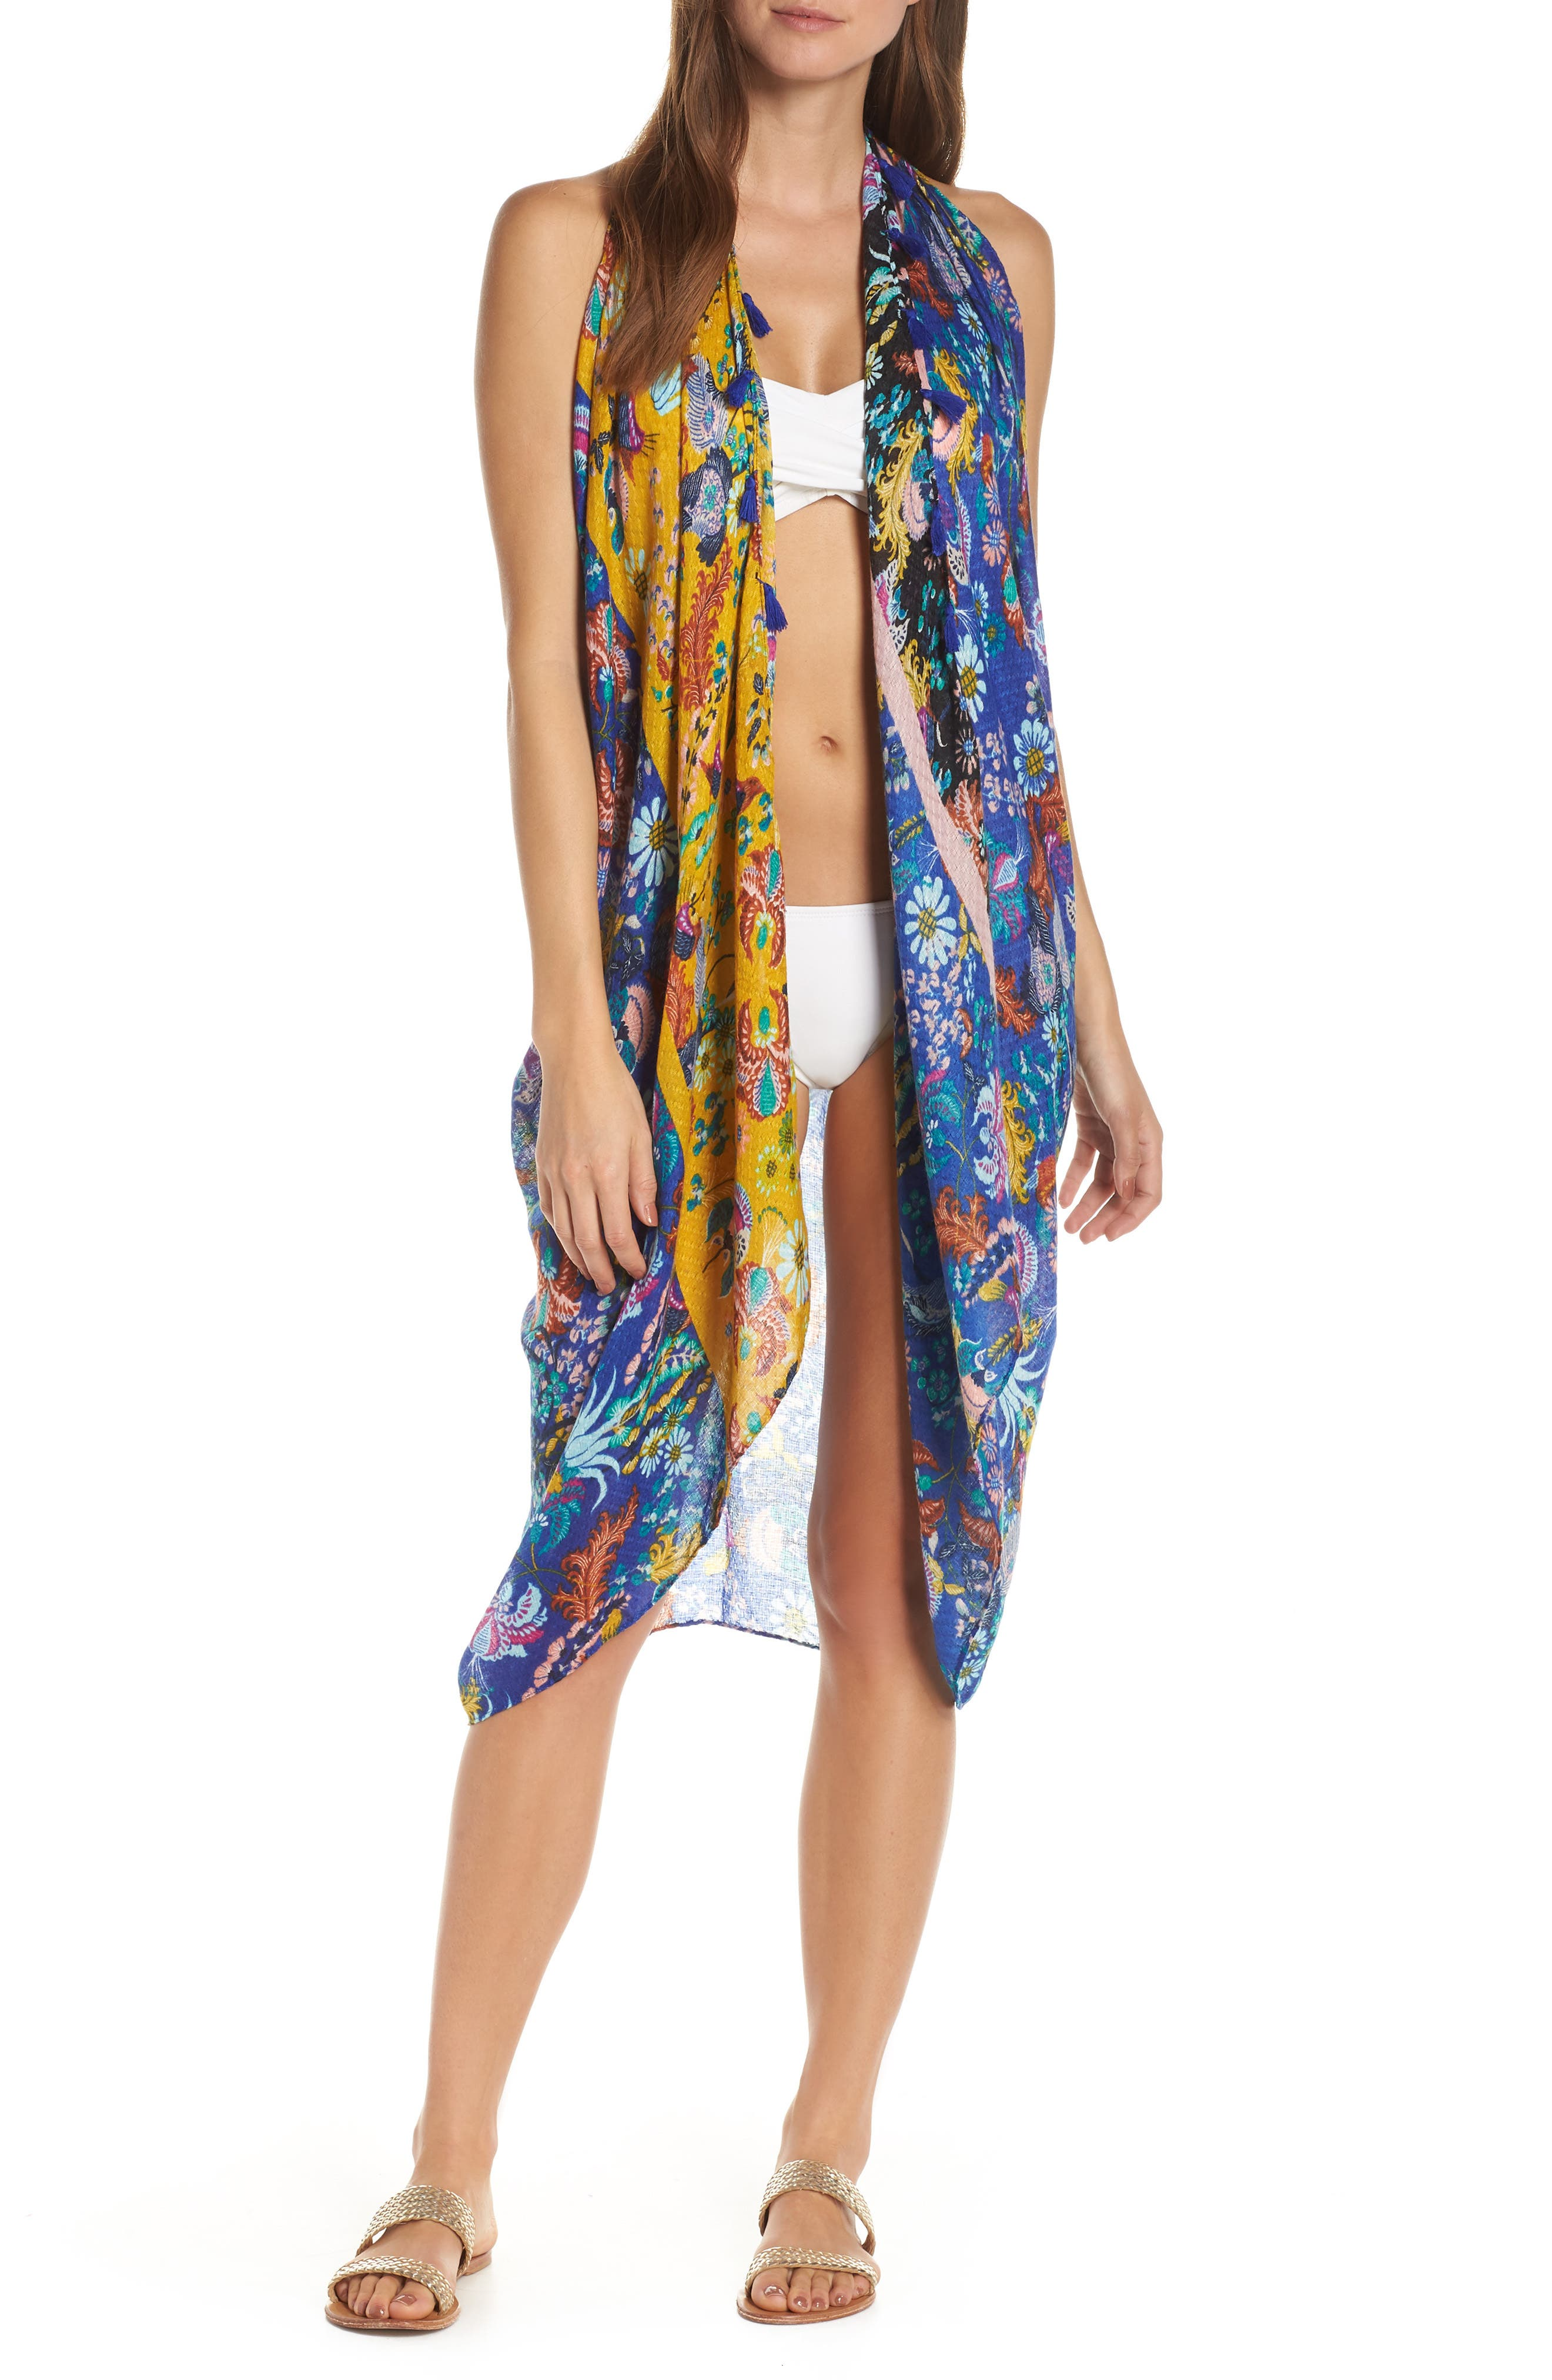 Pool To Party Spirit Cover-Up Vest